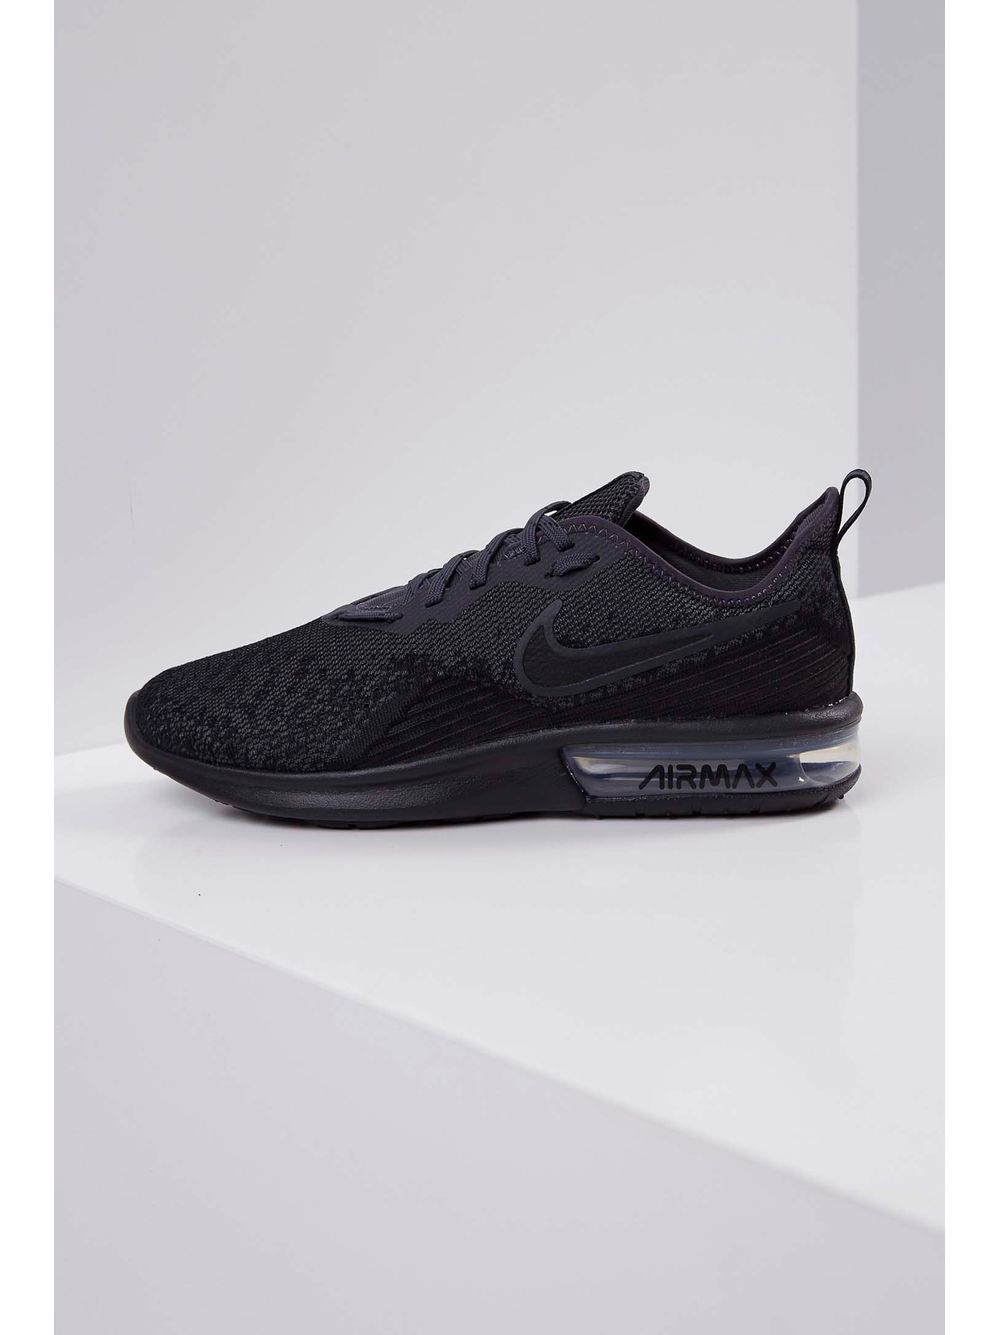 45e30913ff5 Tênis Nike Air Max Sequent 4 Preto - pittol